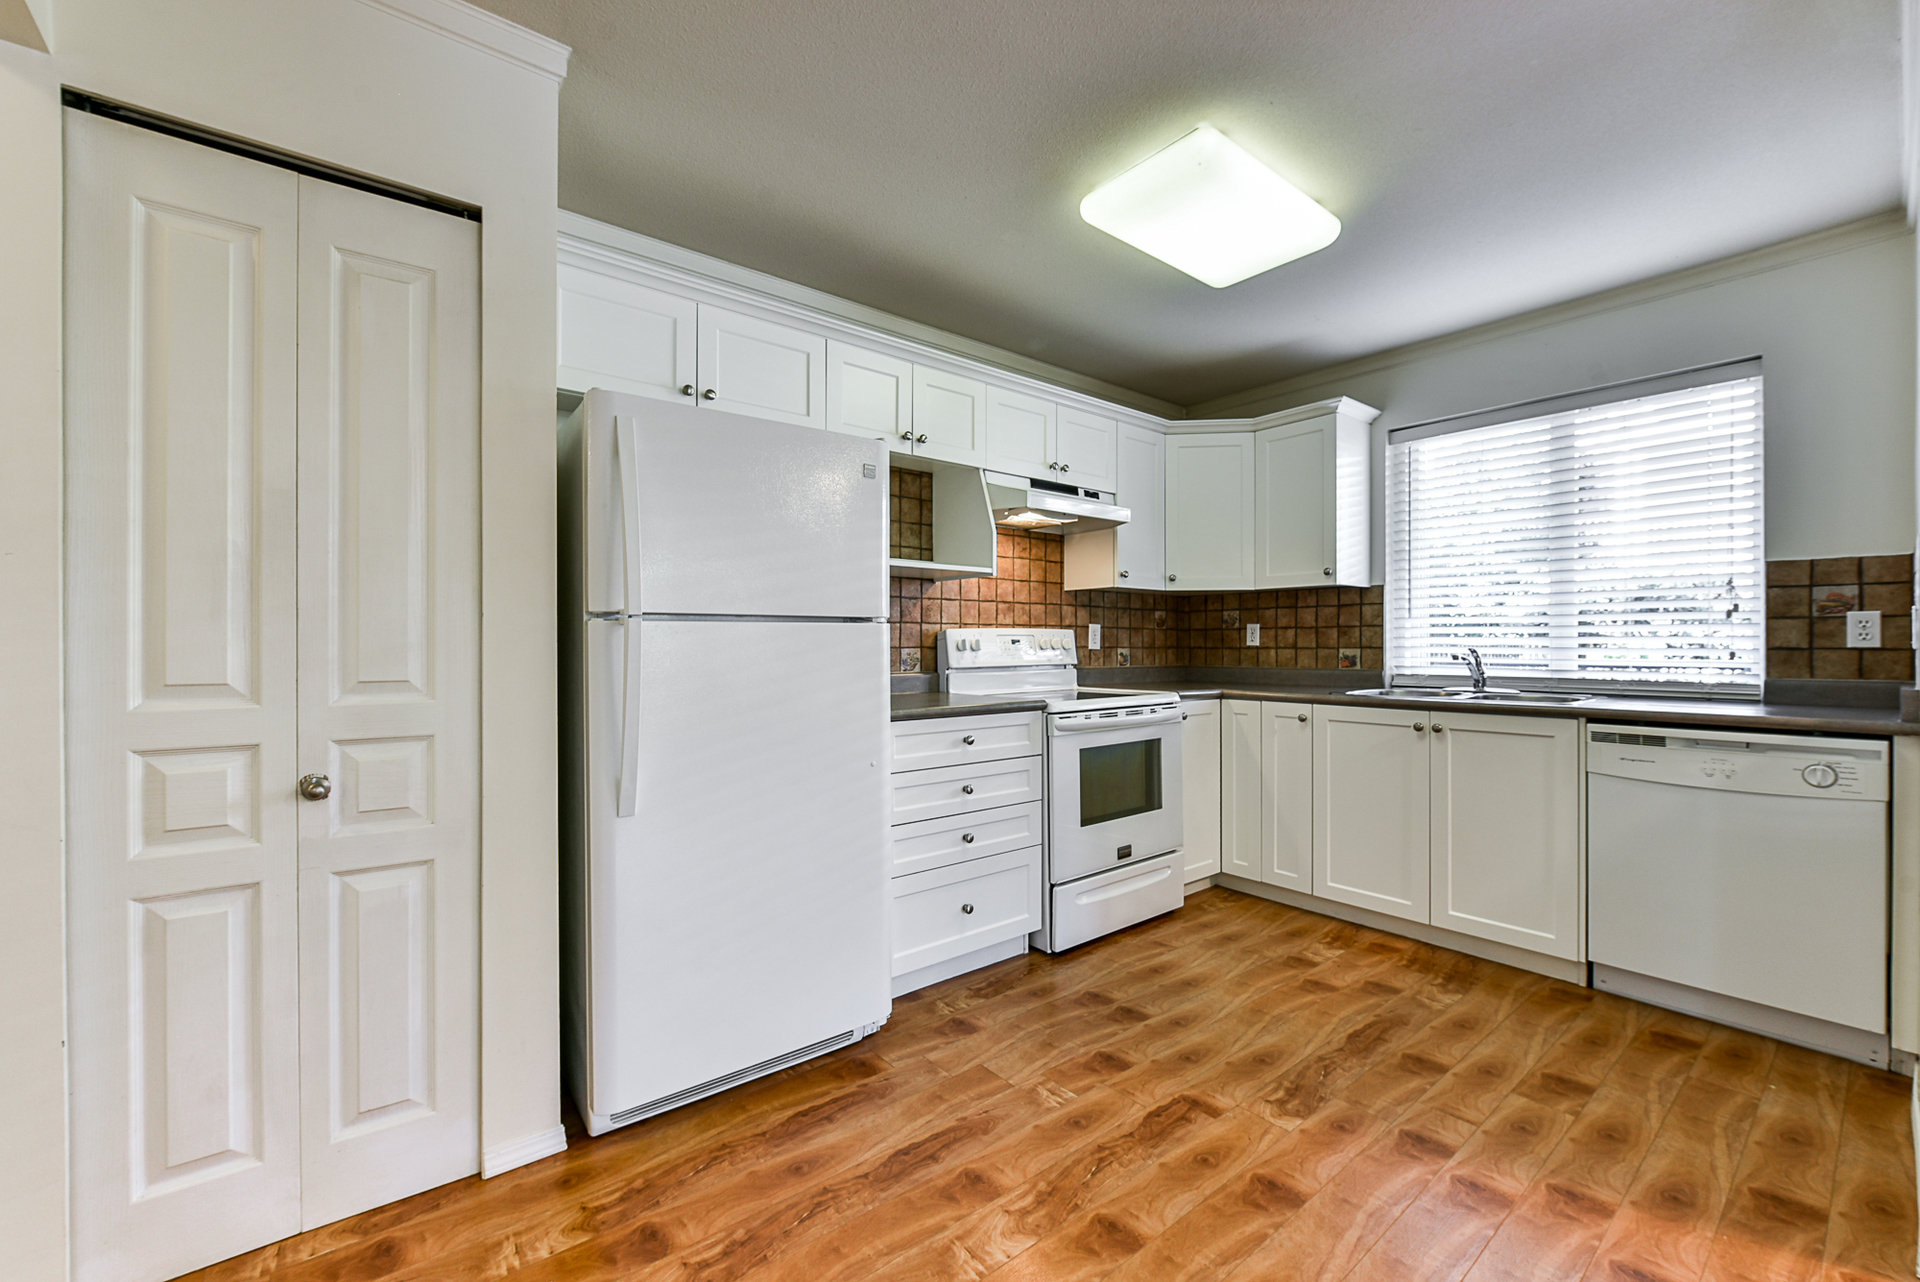 unit-110-33480-george-ferguson-way-abbotsford-8 at #110 - 33480 George Ferguson Way, Central Abbotsford, Abbotsford